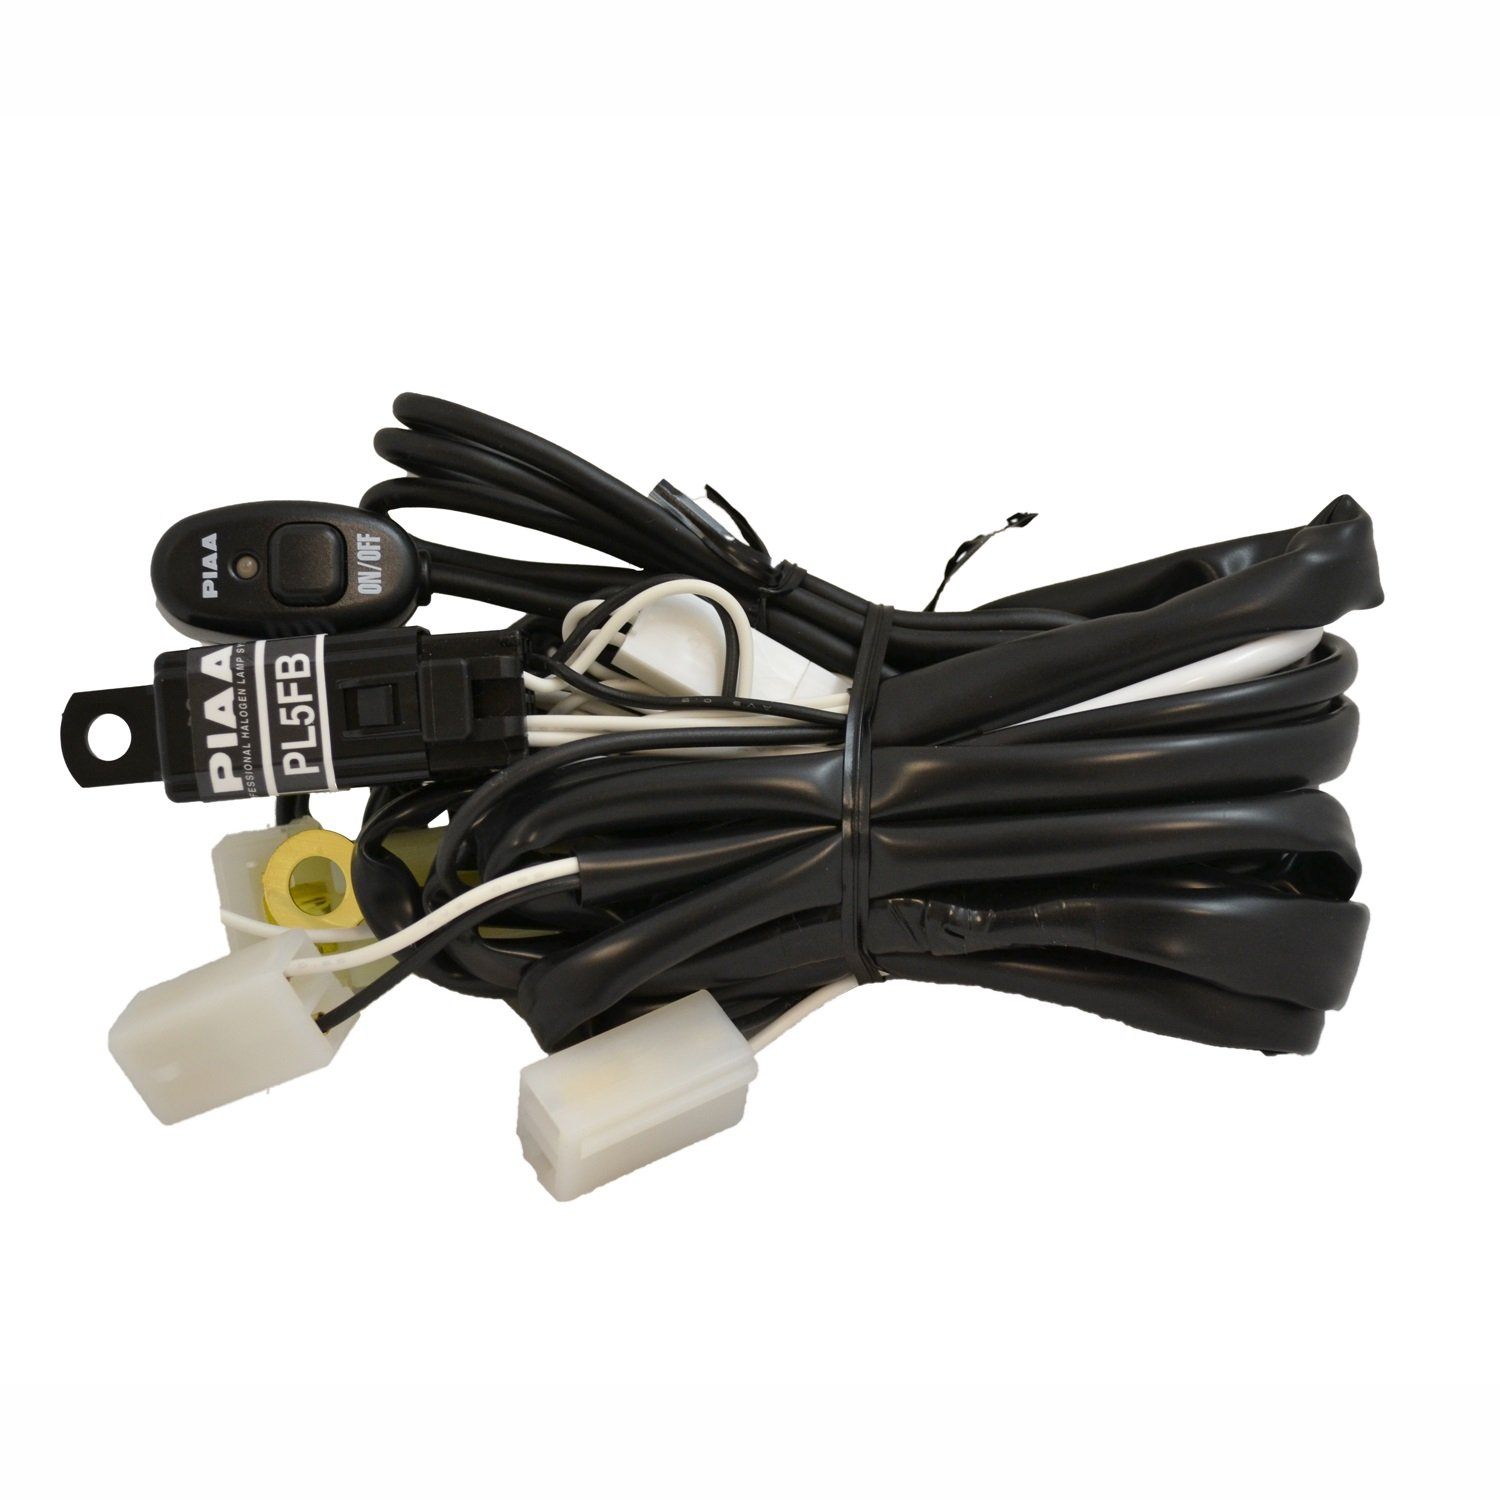 616IEfhfH L._SL1500_ amazon com piaa 34085 lamp wiring harness automotive piaa fog light wiring harness at alyssarenee.co